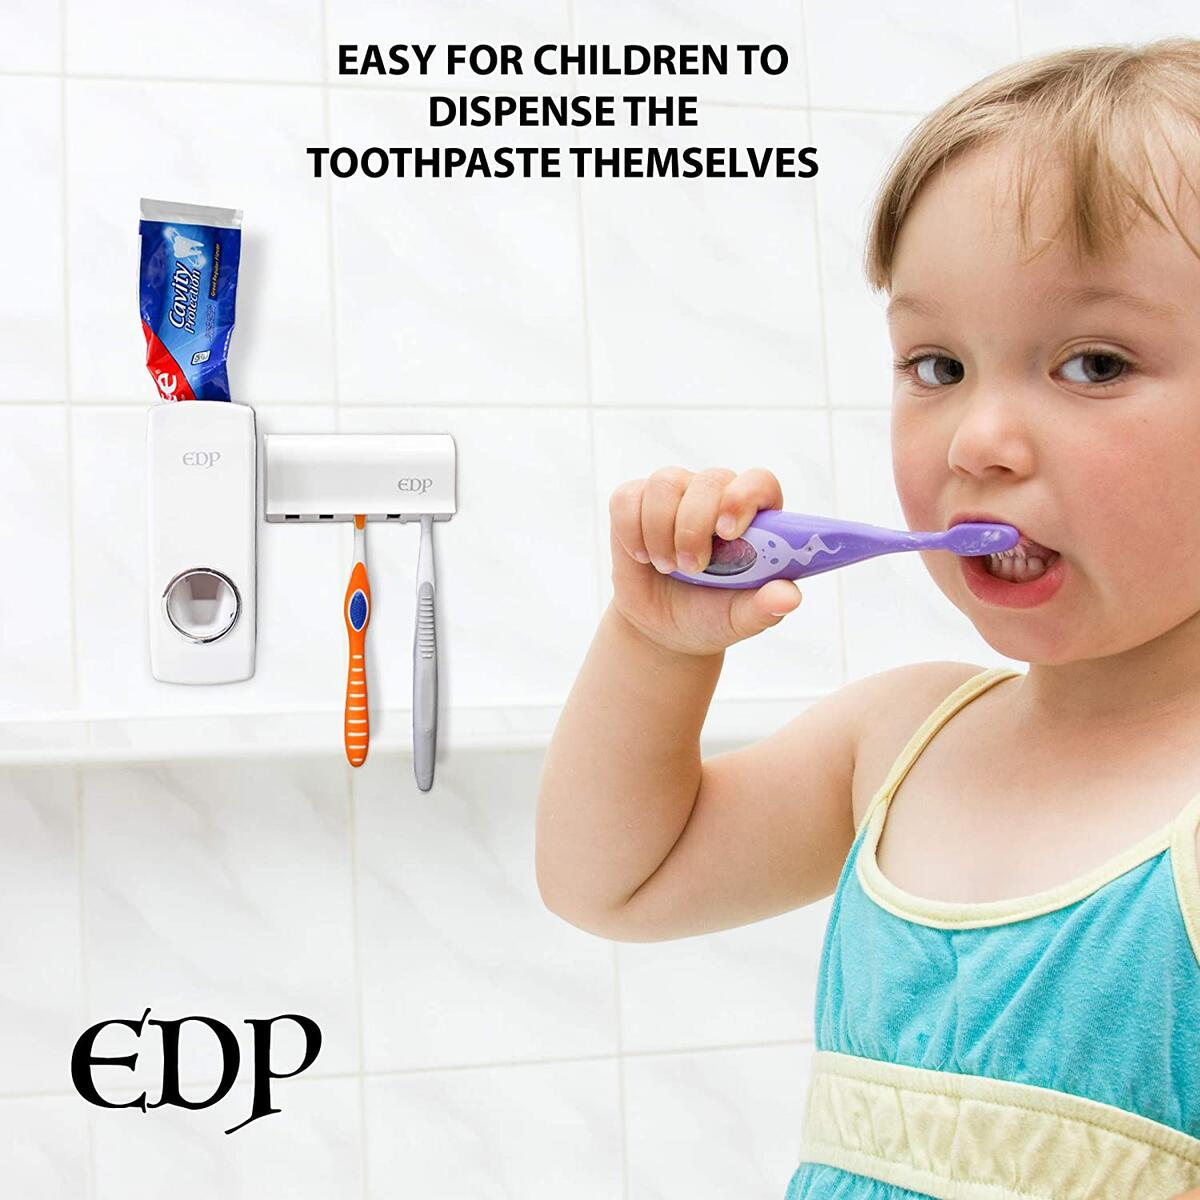 New EDP Auto Toothpaste Dispenser and Brush Holder by Everyday products